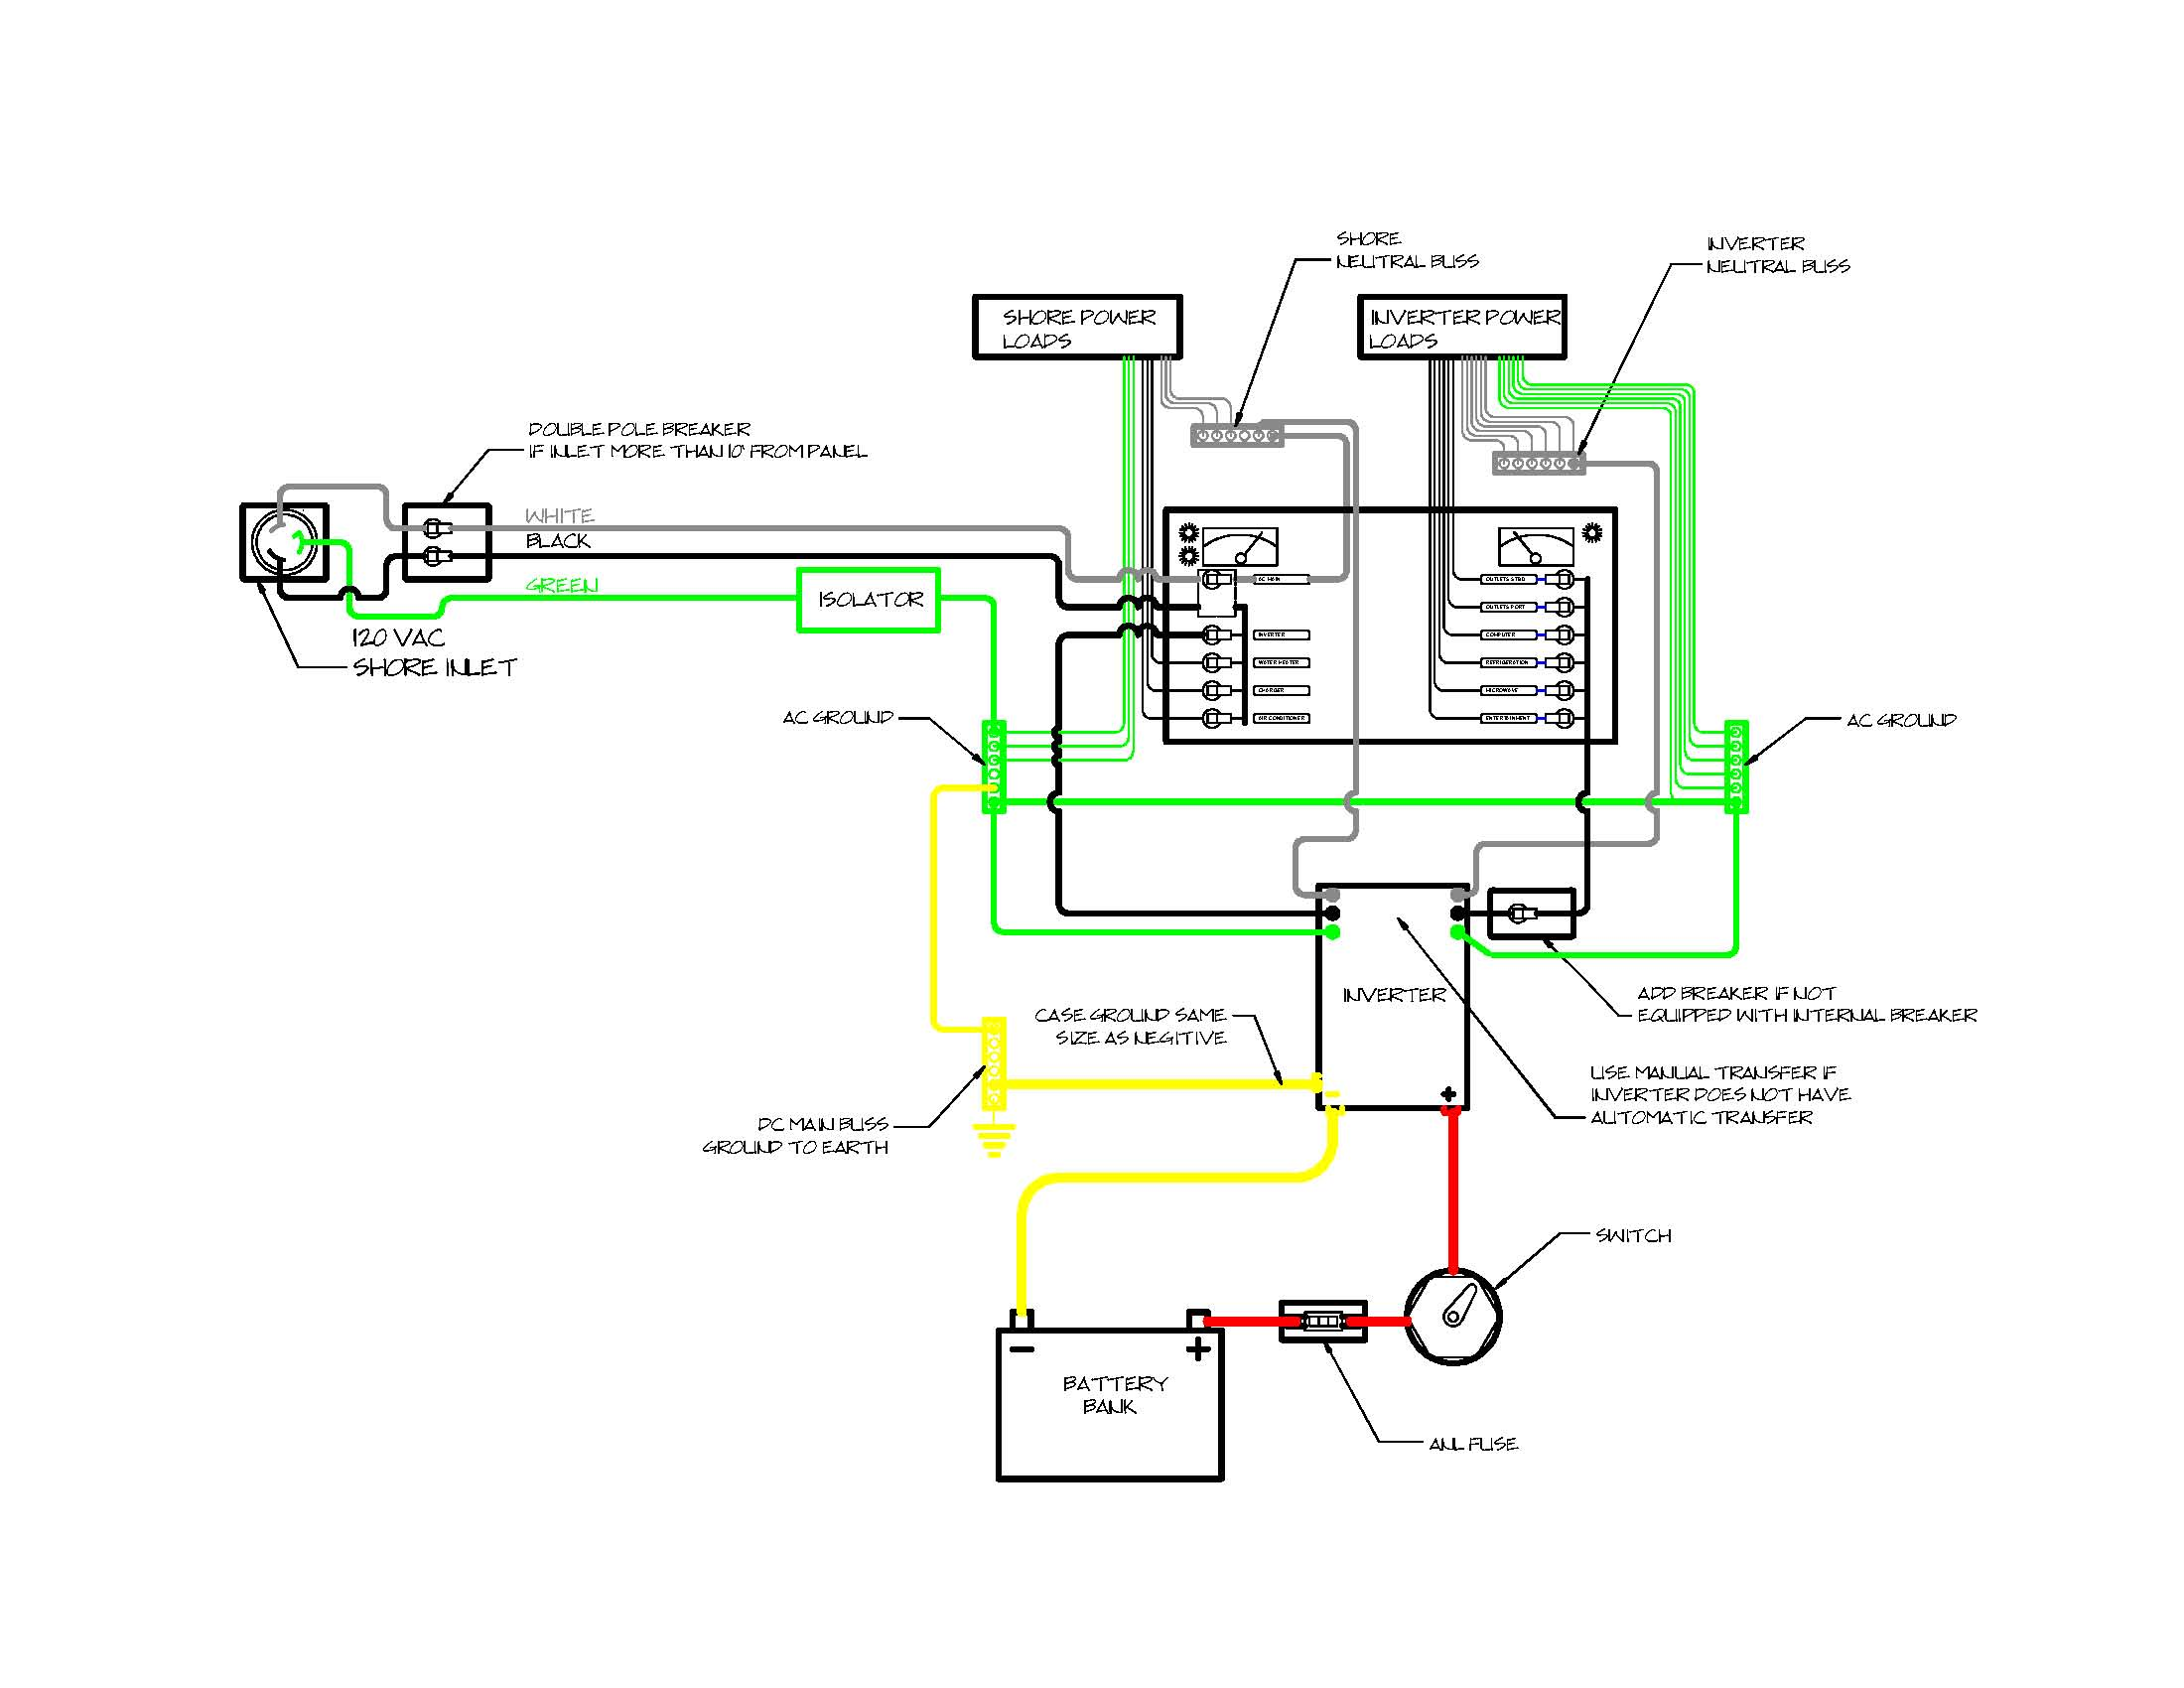 boat inverters diagram with Understanding Inverter Installations on Viewtopic in addition Faq Solar Systems in addition 633 moreover Solar Inverter Schematic Diagram additionally 30   Battery Charger.